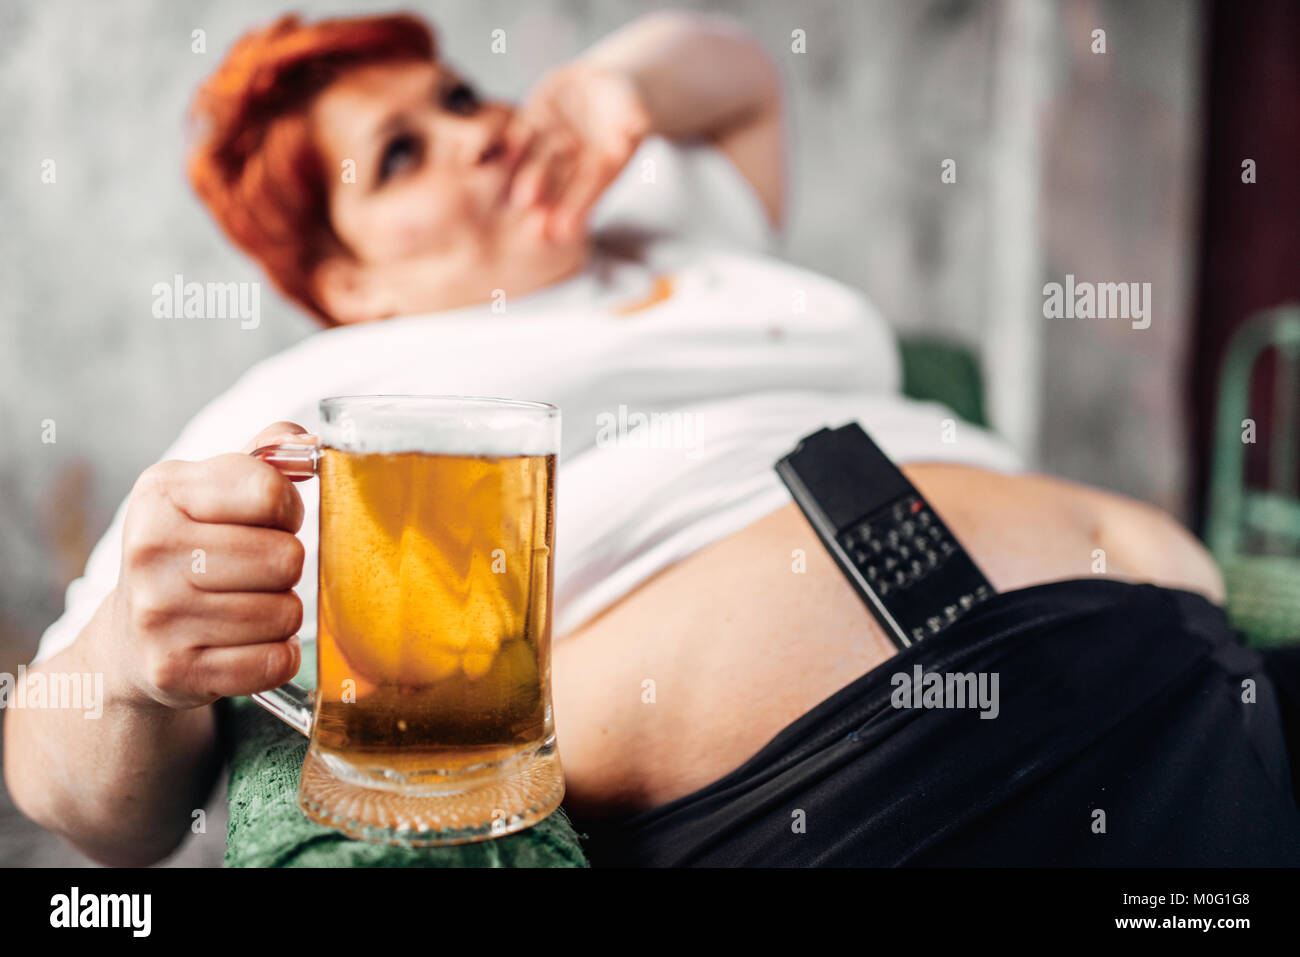 Overweight woman with glass of beer in hand, obesity. Unhealthy lifestyle, fatty female - Stock Image